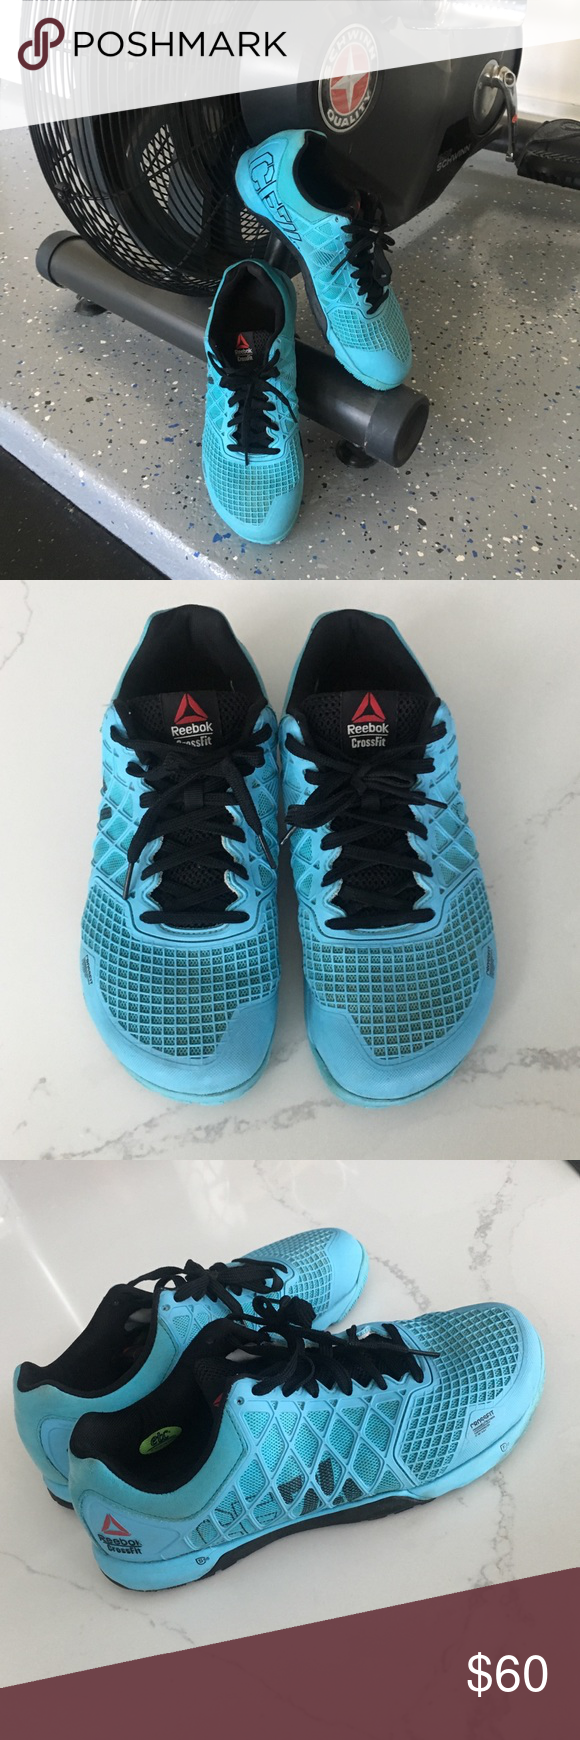 e3853efd6685 Host Pick  Reebok Mens CrossFit Nano 4.0 shoes These neon blue   black  Reebok CrossFit Nano 4.0 shoes have only been worn in the gym and therefore  are in ...